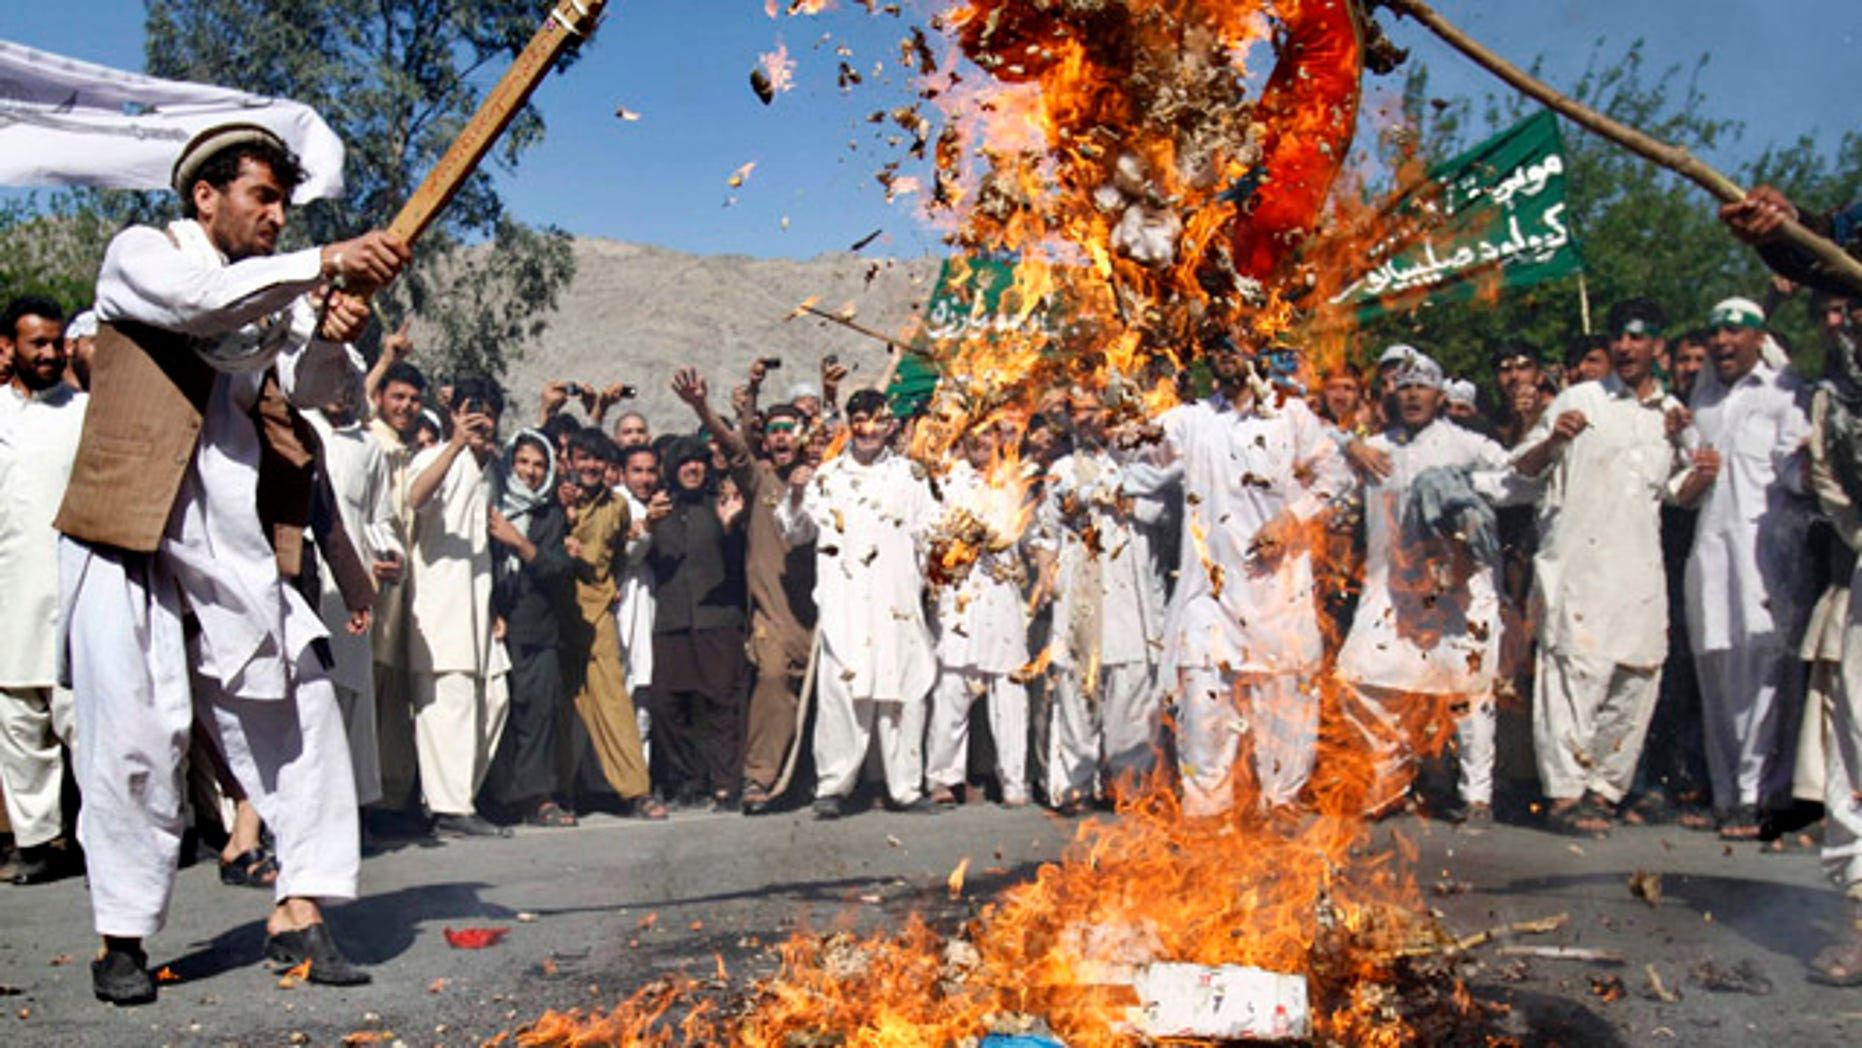 April 3, 2011: Afghan protestors burn an effigy of U.S. President Barack Obama during a demonstration in Jalalabad, Afghanistan. Afghan protests against the burning of a Koran in Florida entered a third day with a demonstration in the major eastern city Sunday, while the Taliban called on people to rise up, blaming government forces for any violence.